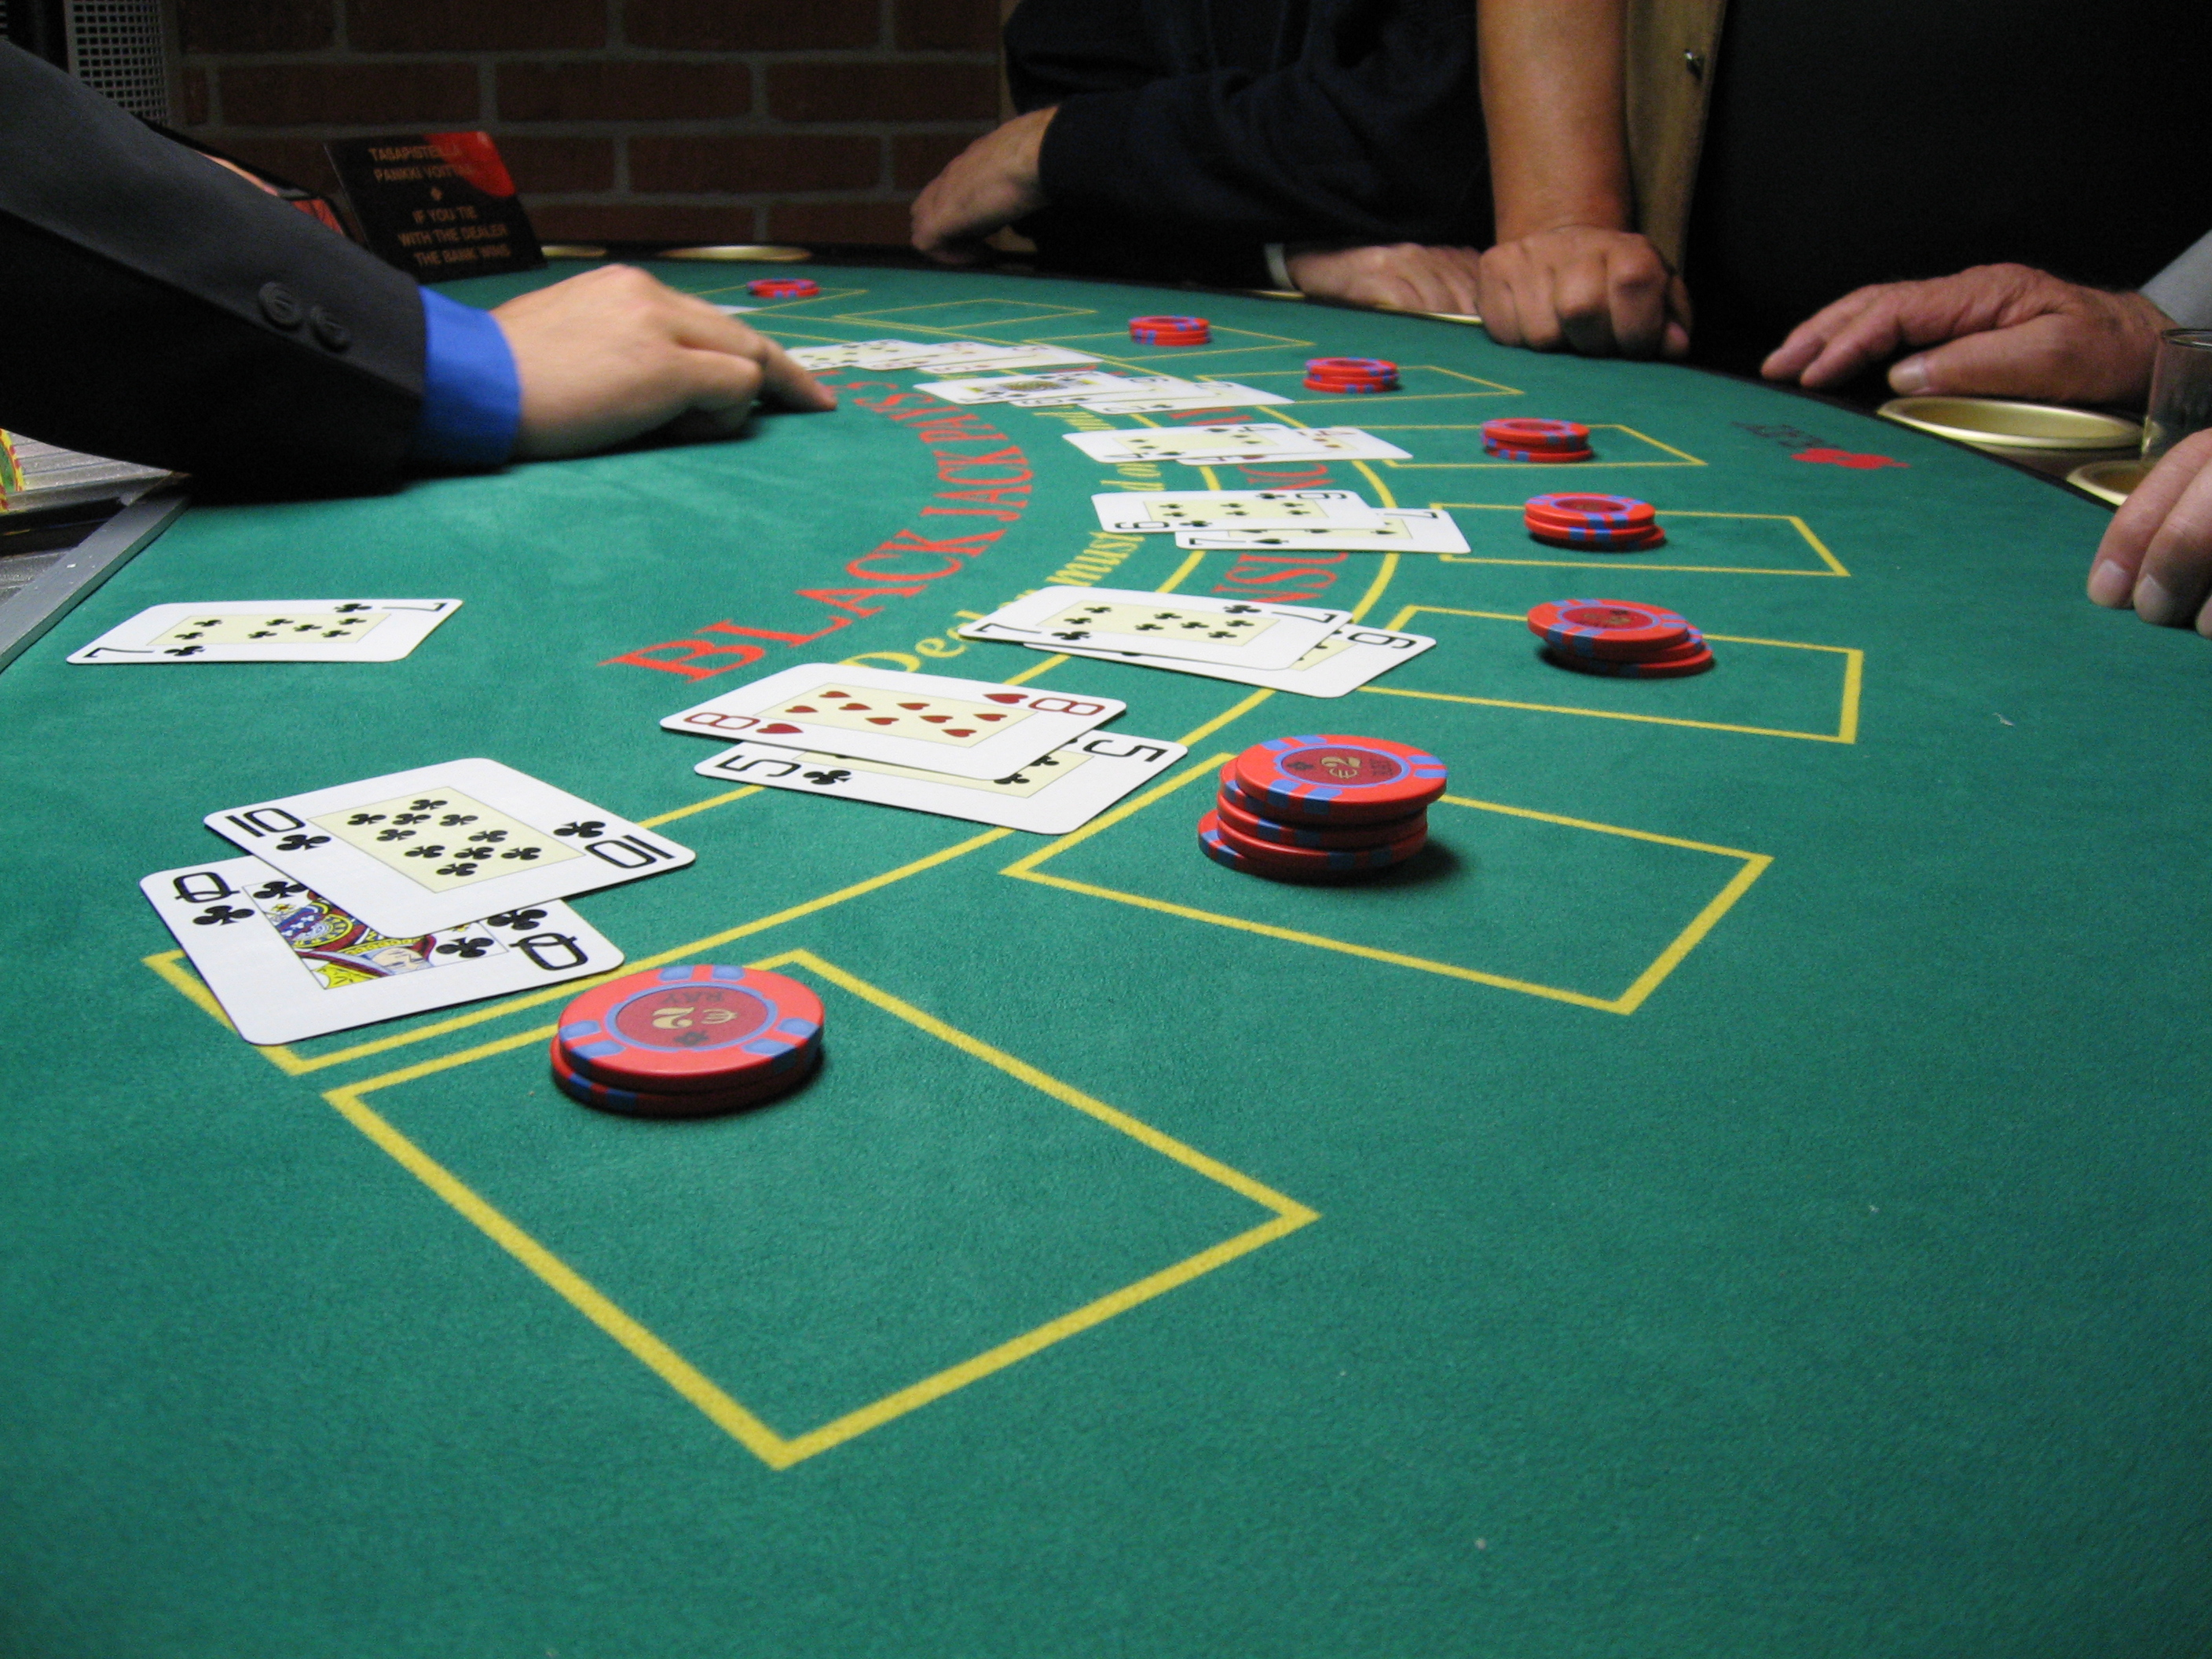 Blackjack counting cards analyser 429576